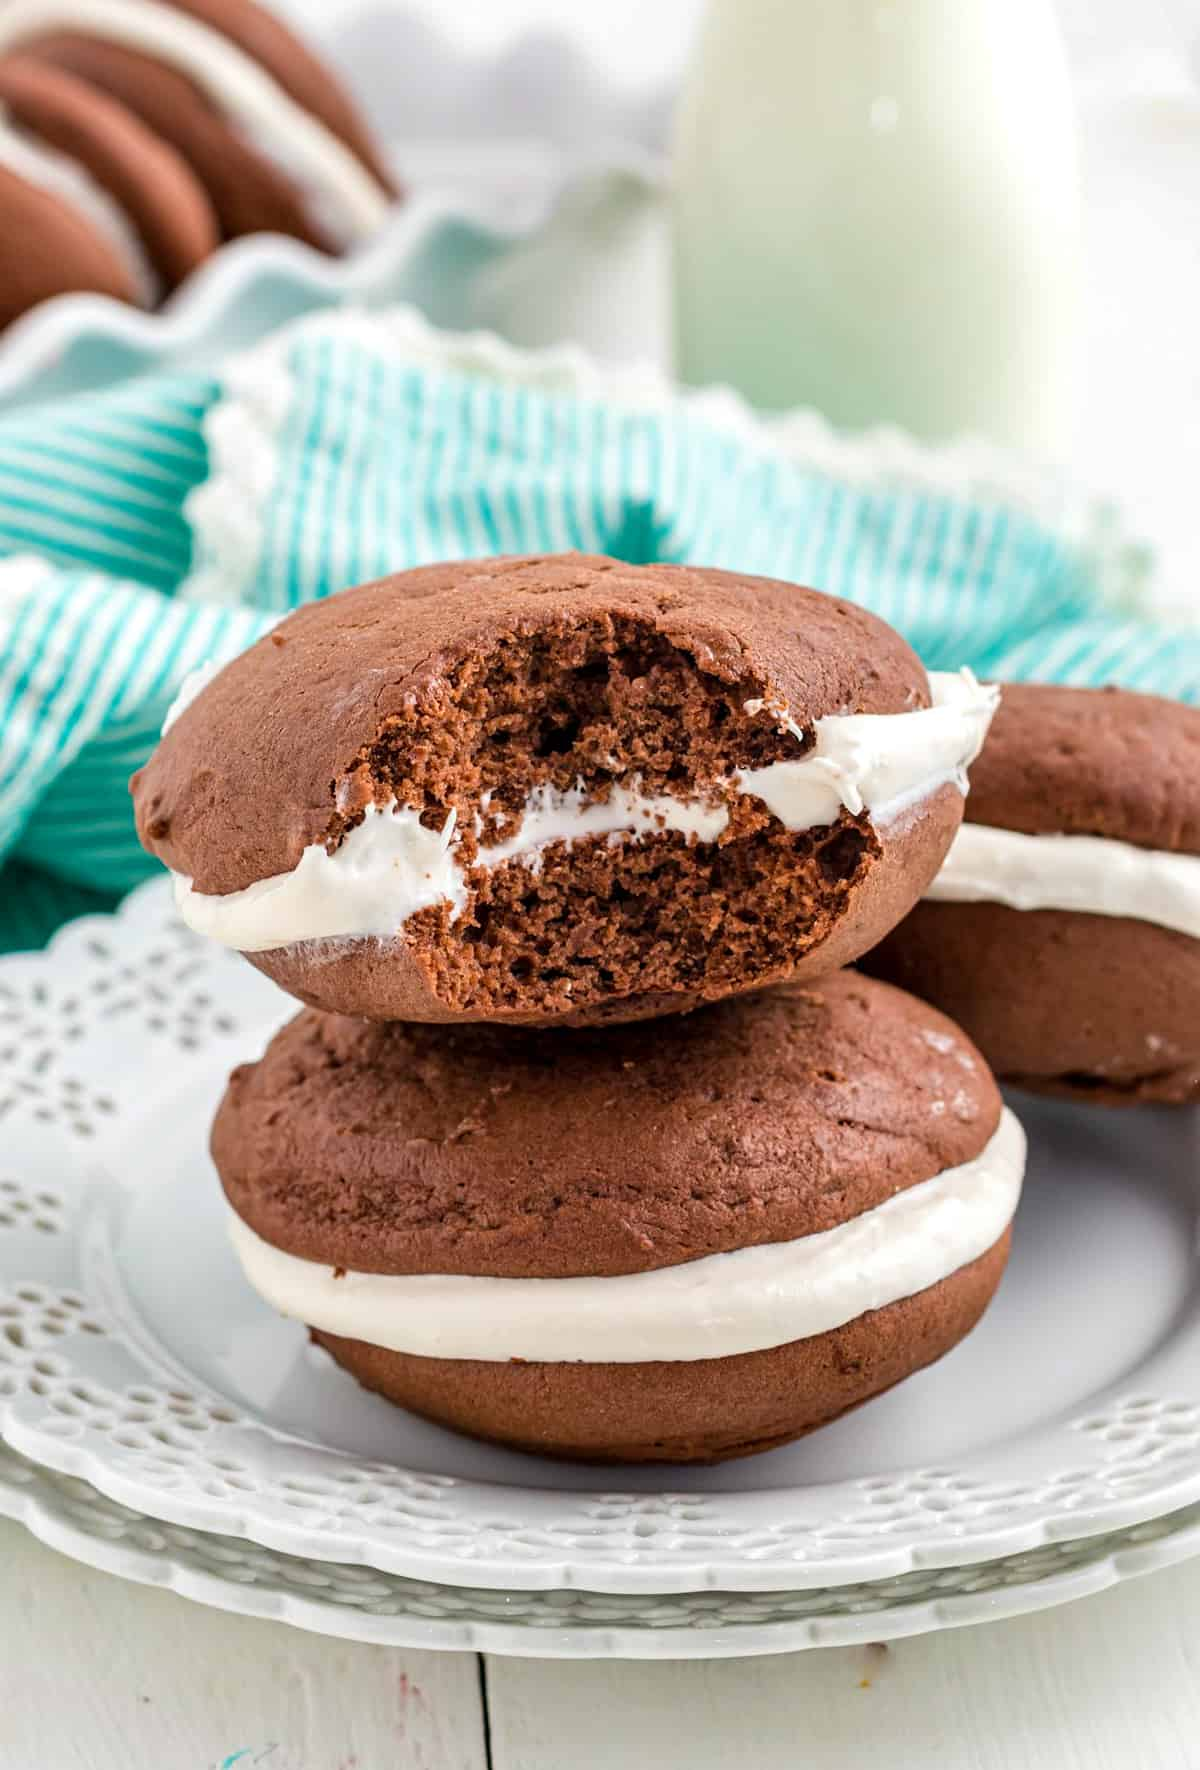 Bite taken out of one Whoopie Pie on white plate